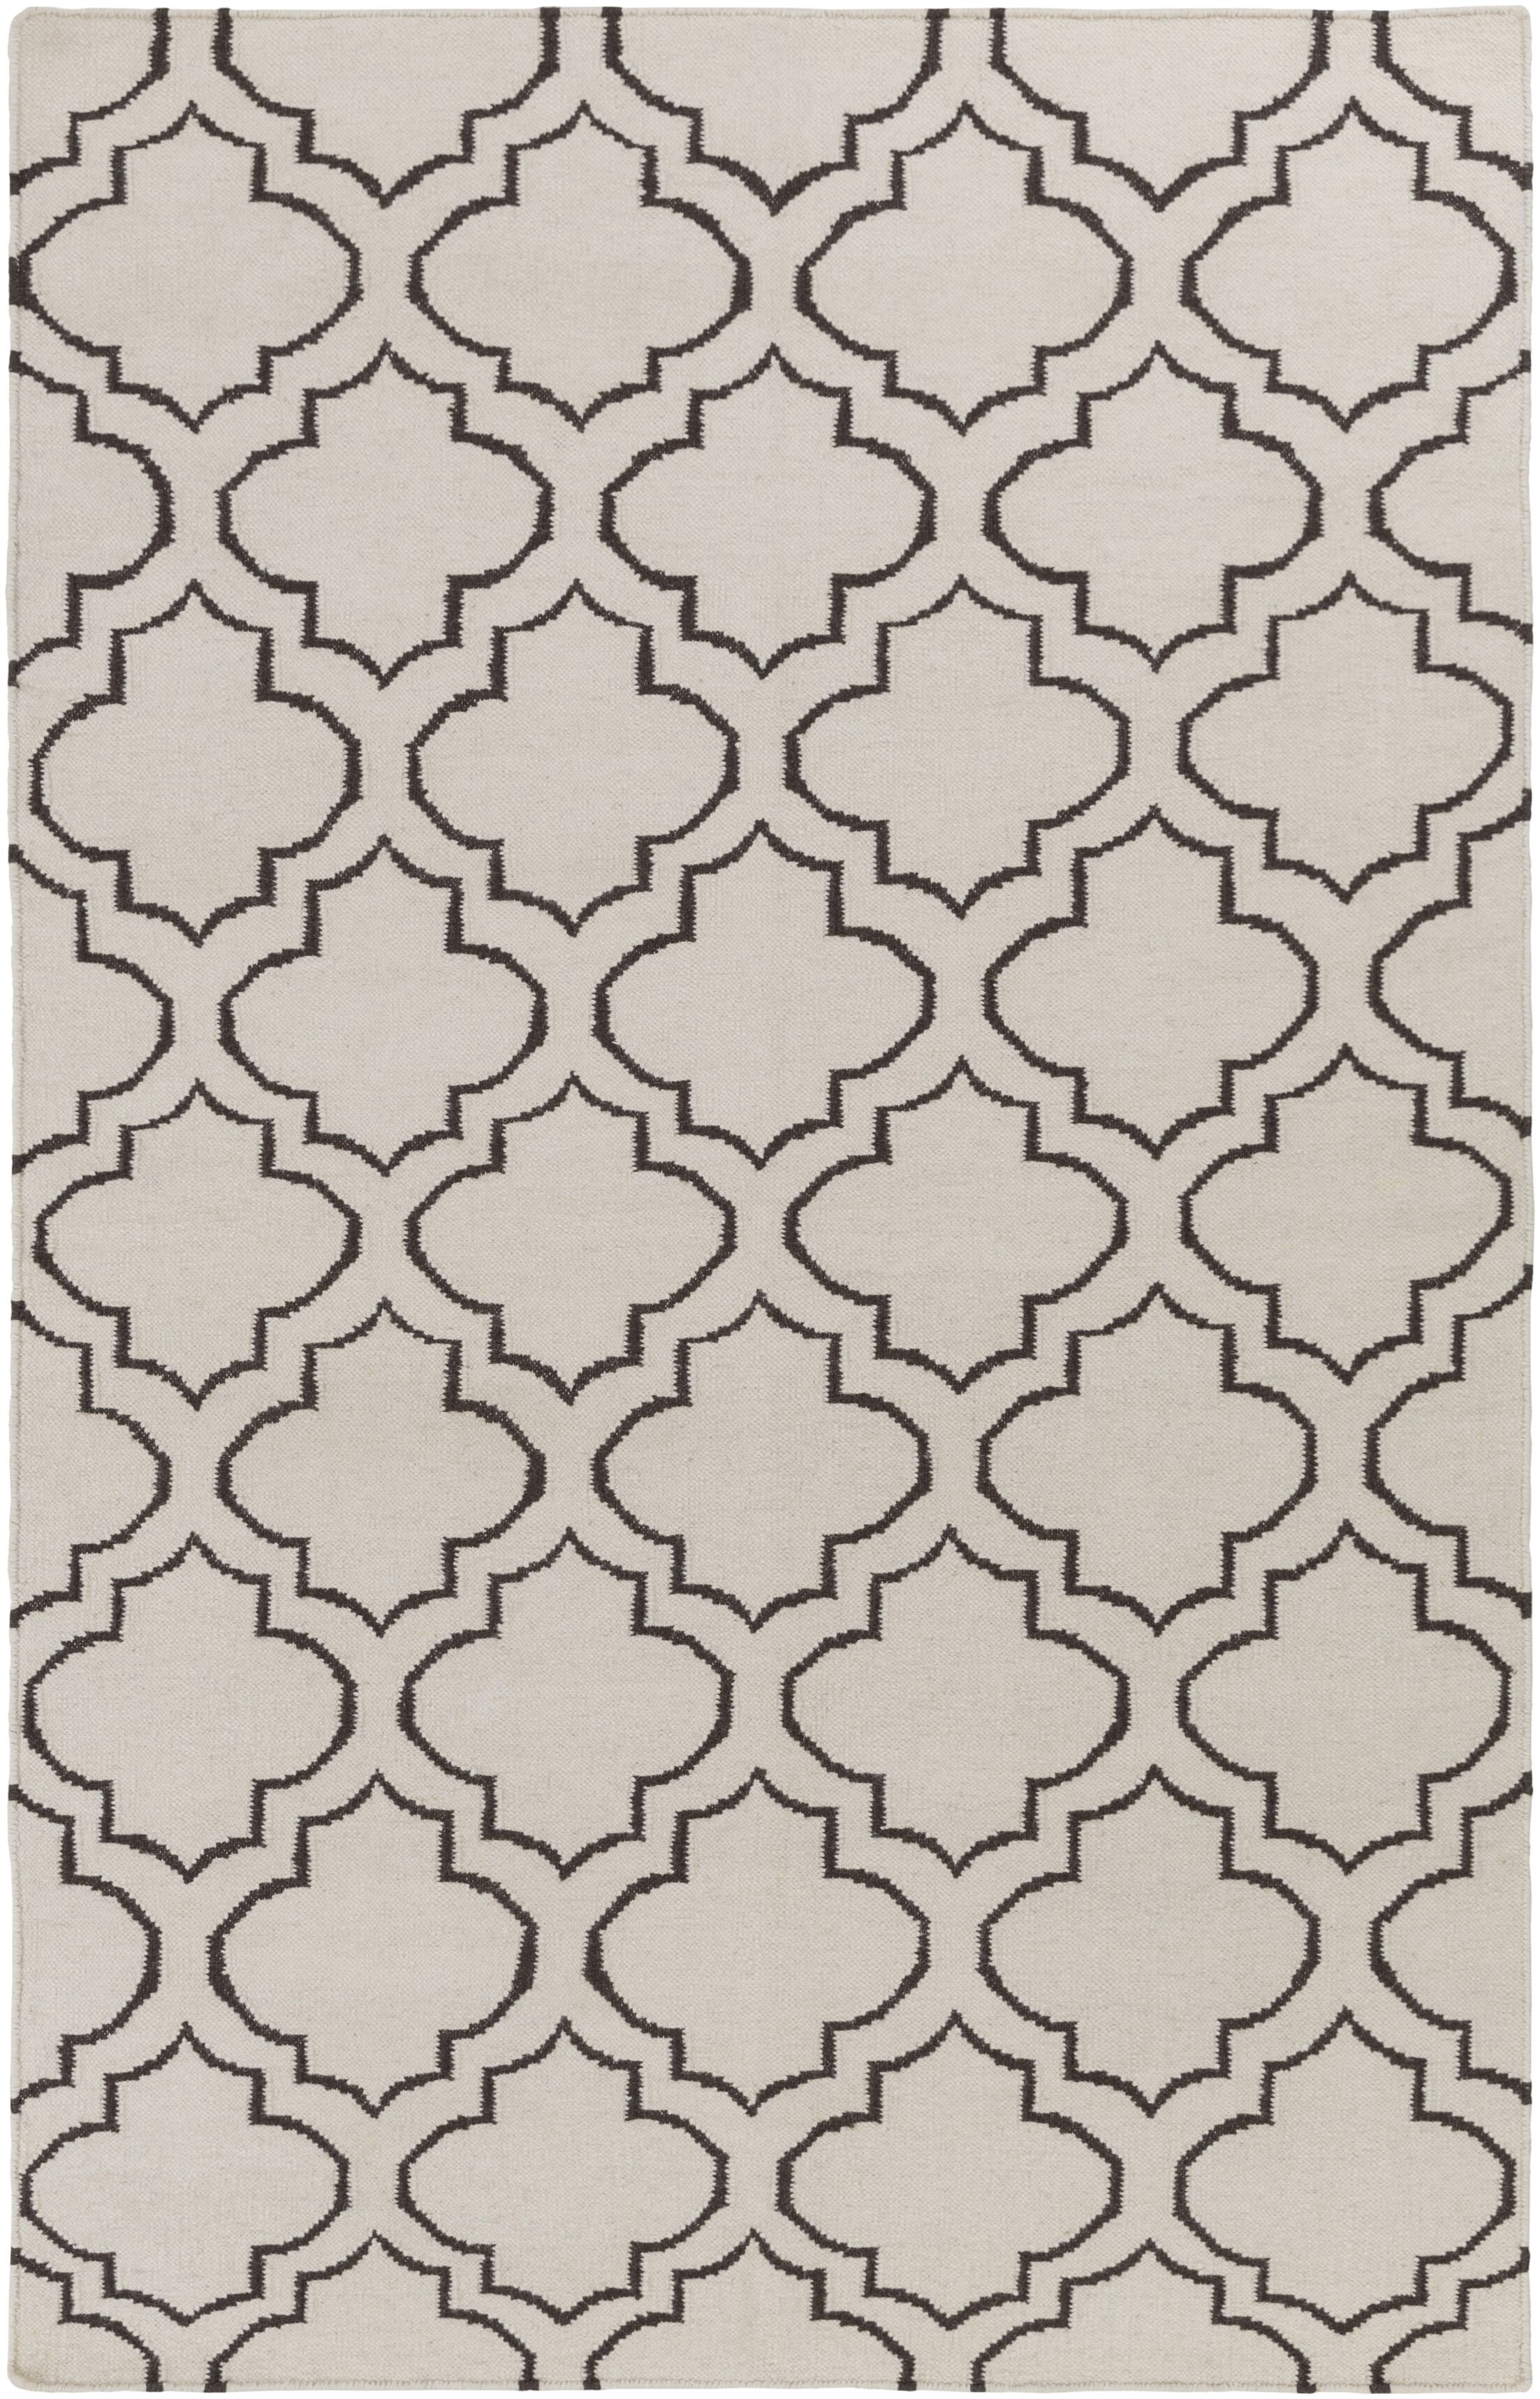 Aylesworth Ivory/Gray Area Rug Rug Size: Rectangle 9' x 12'